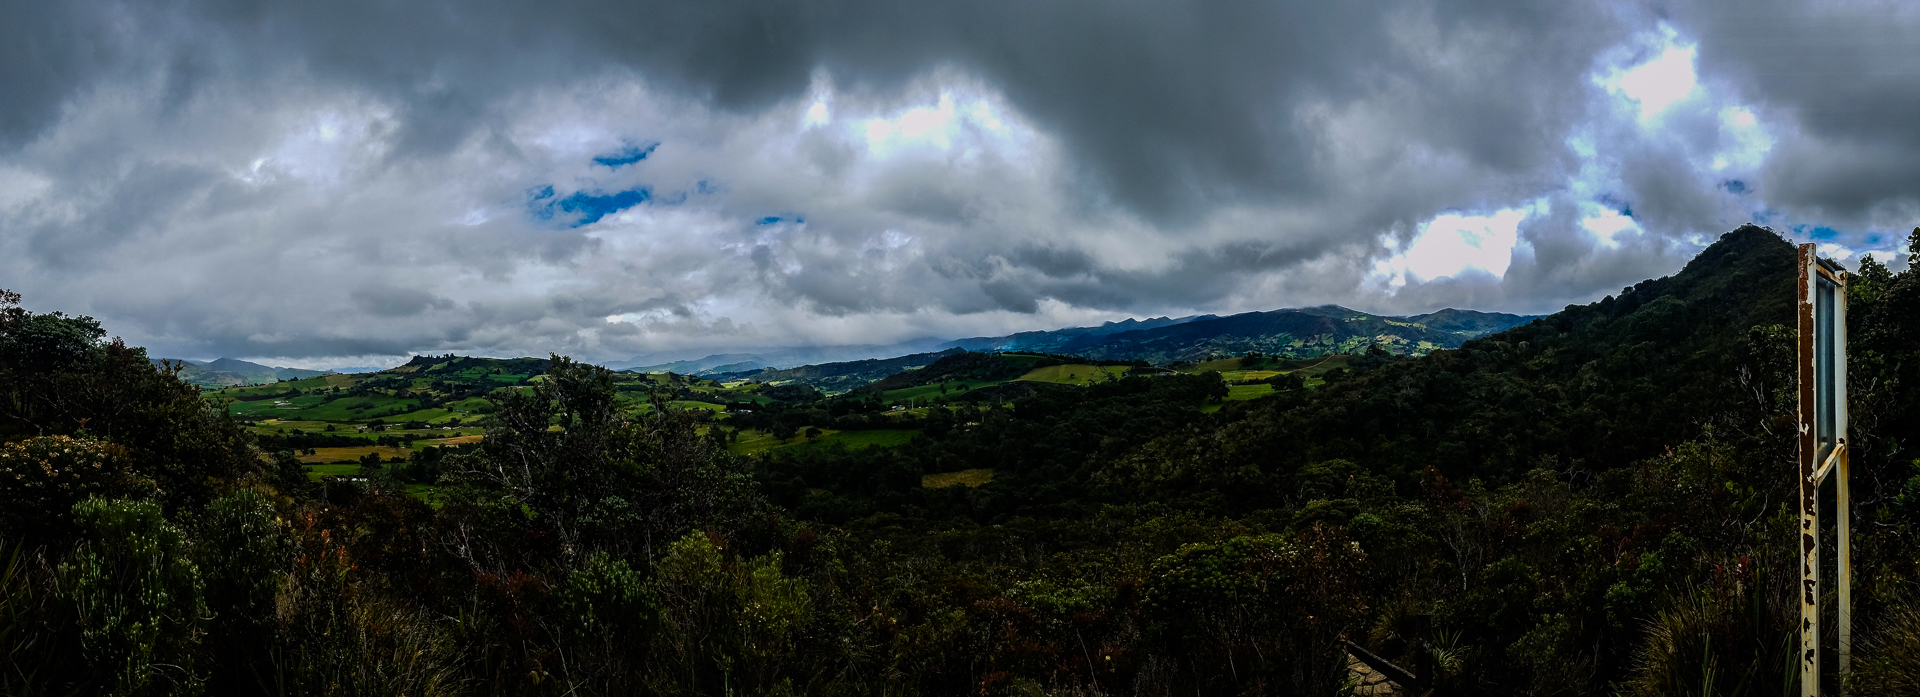 Colombia (s7) (53 of 68).jpg